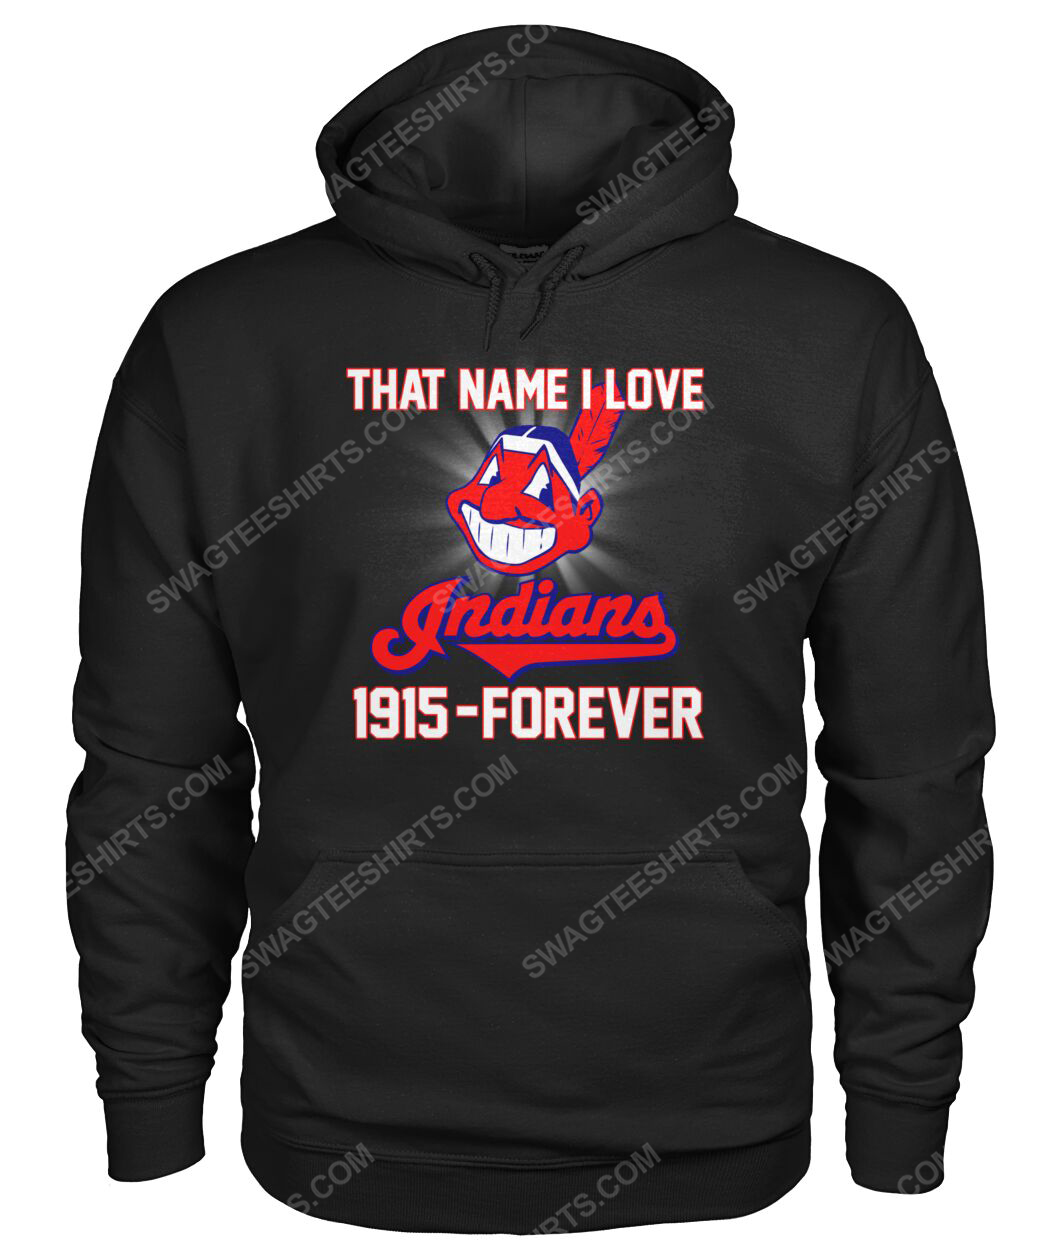 That name i love cleveland indians 1915 forever hoodie 1